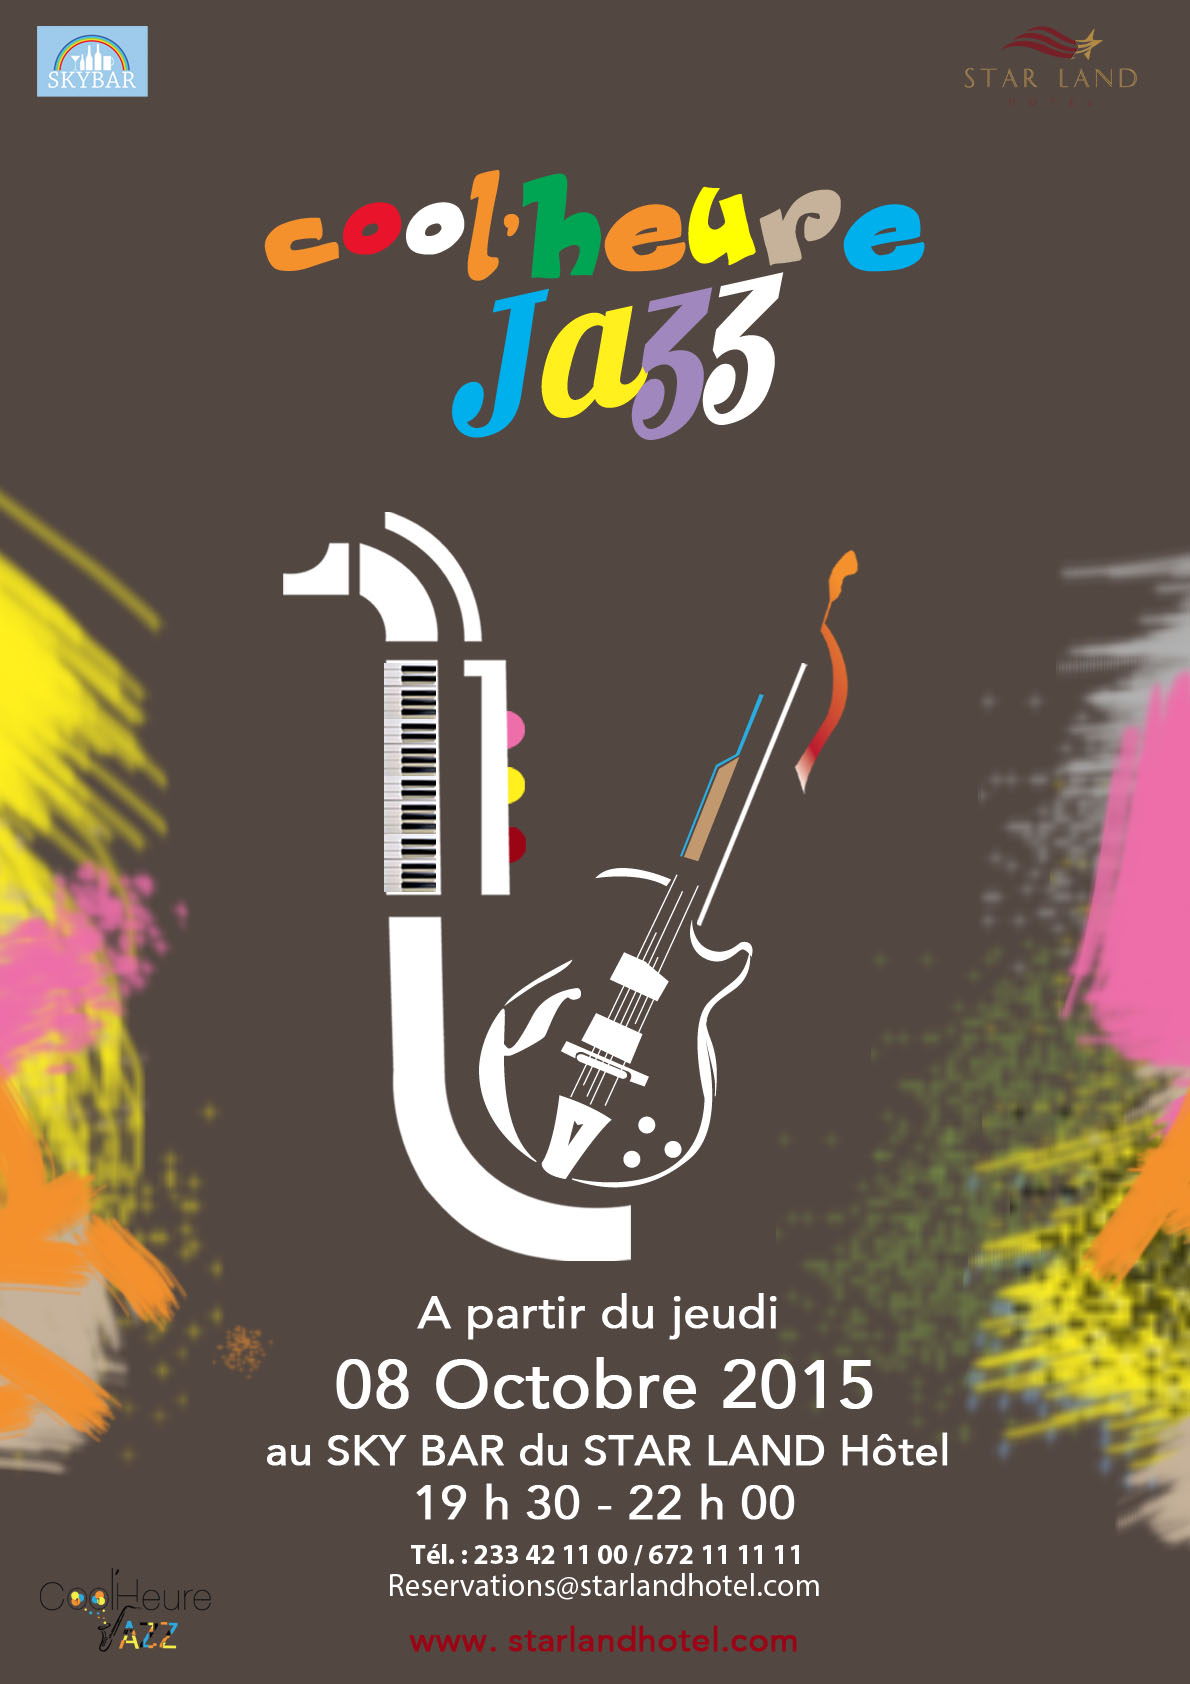 cool'heure jazz - Star Land Hotel Afterwork - Les Marches d'Elodie